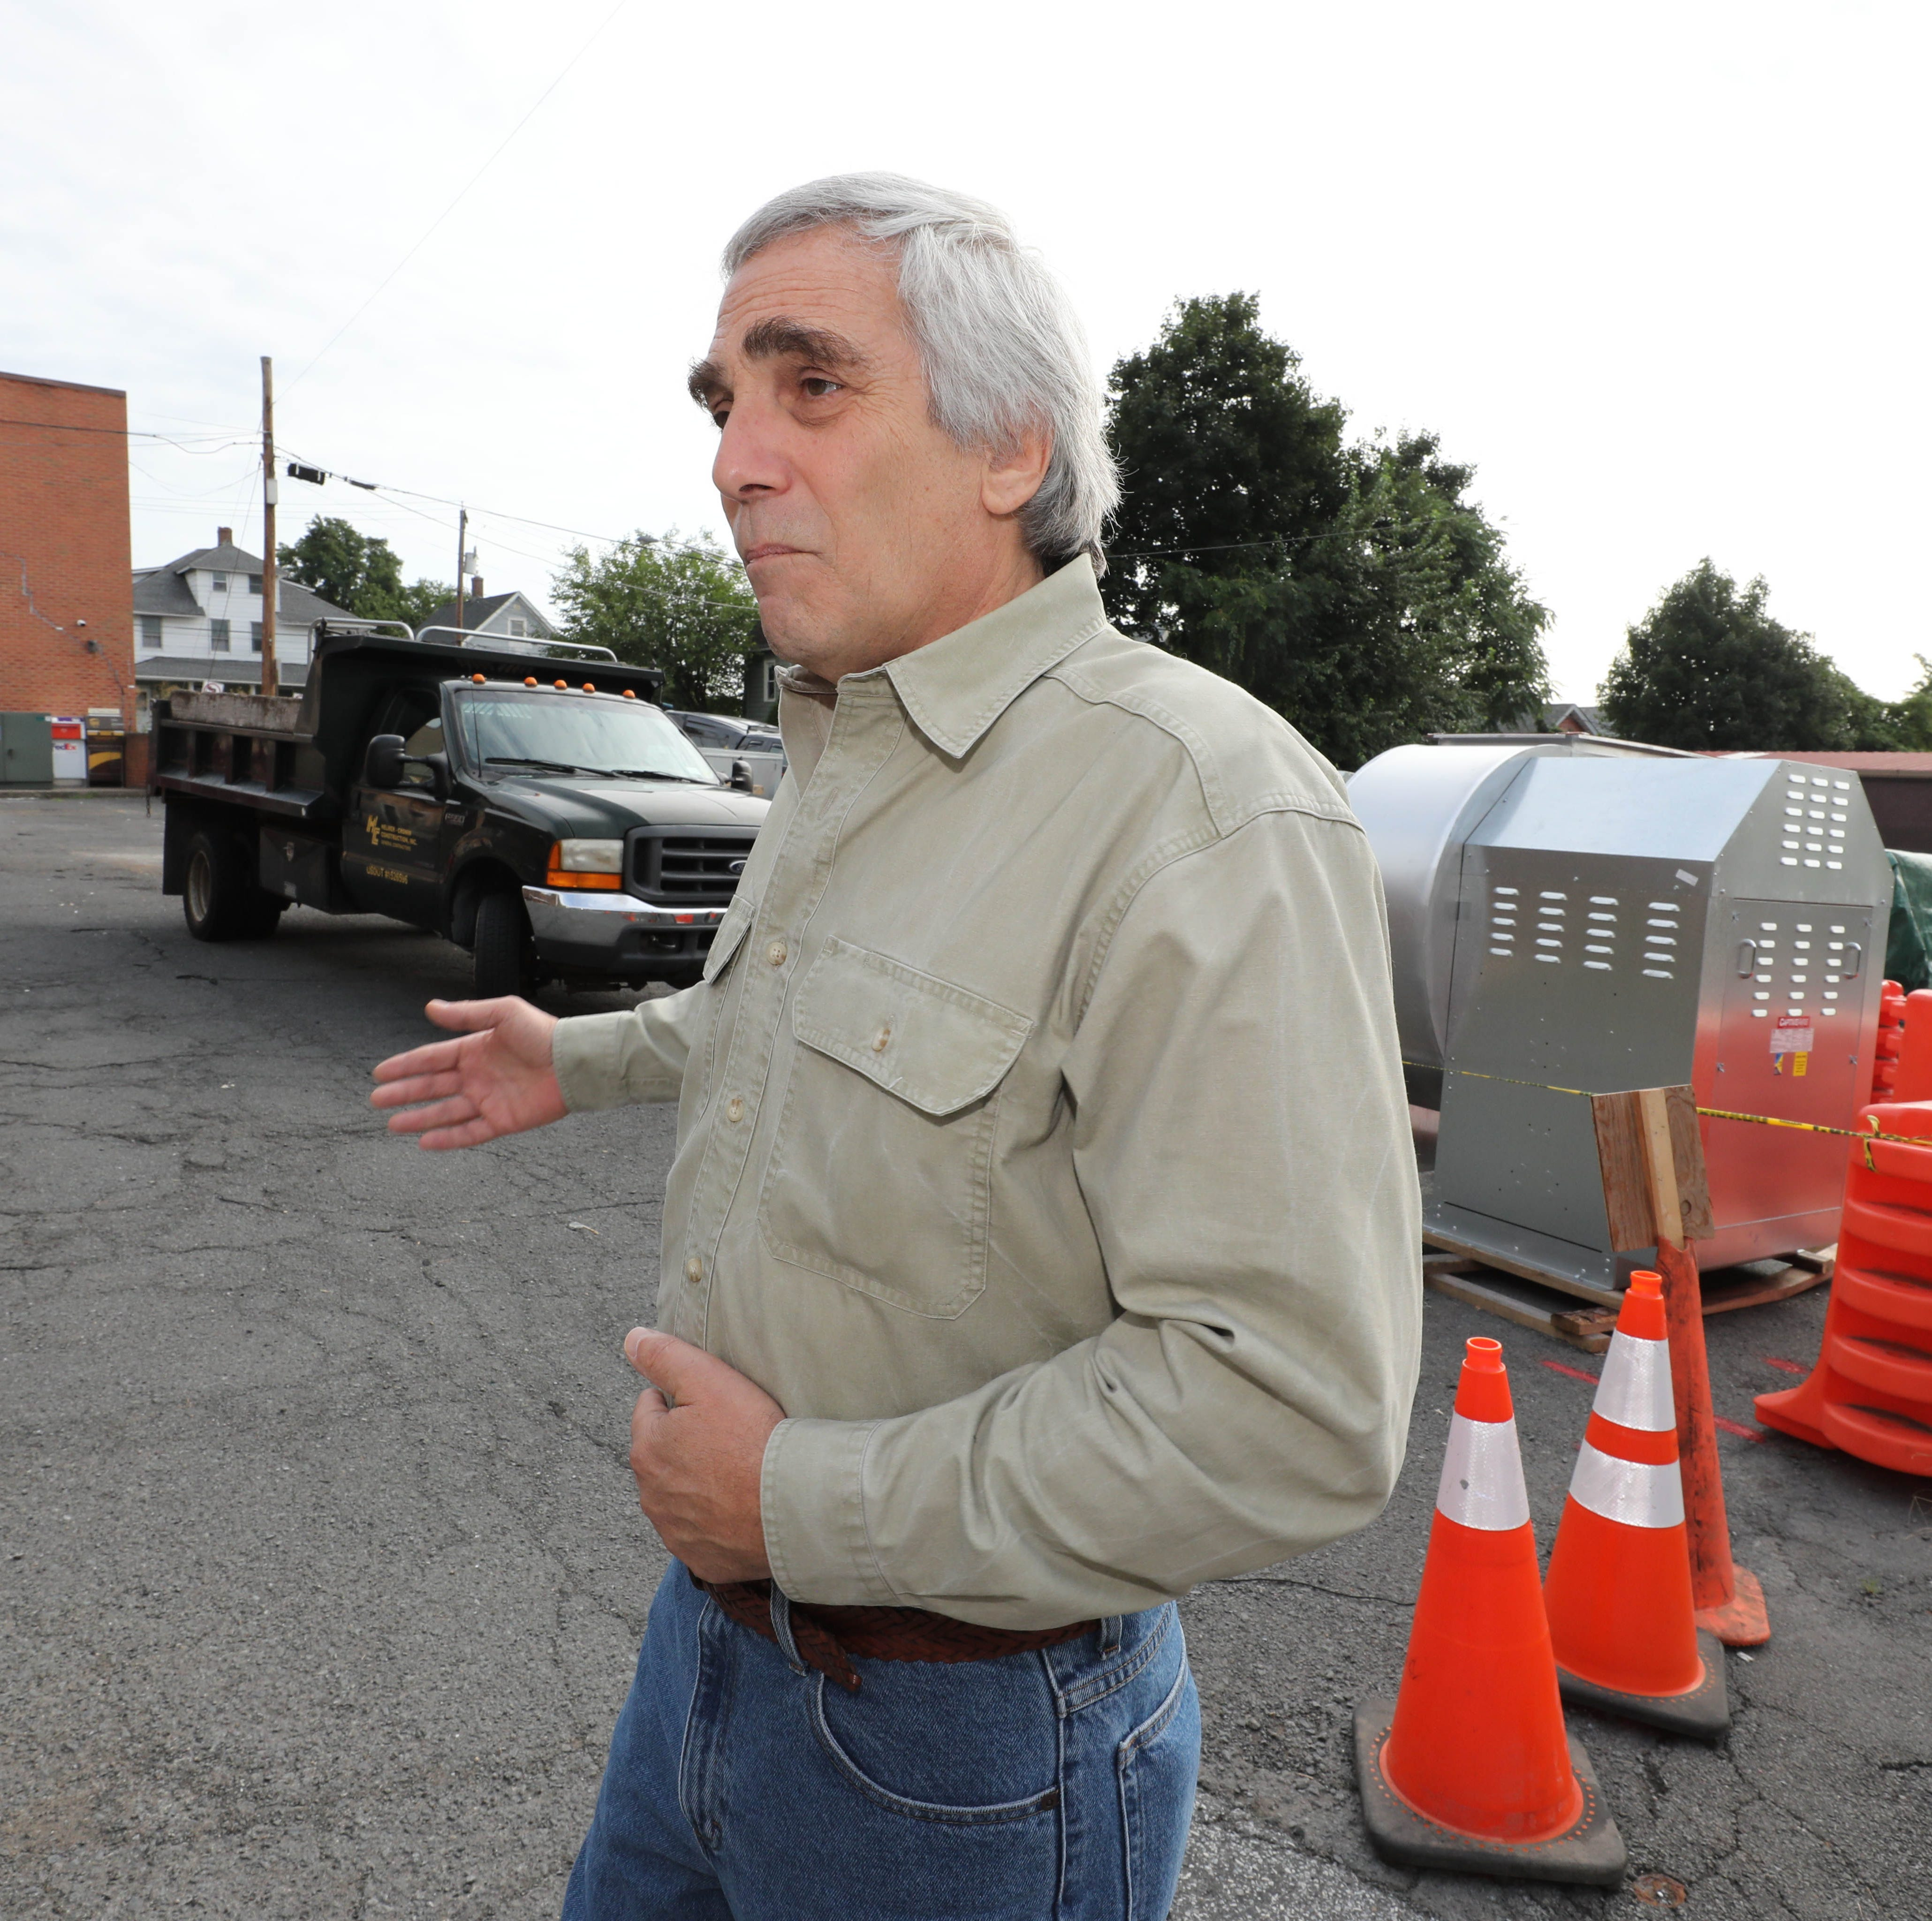 Nyack loses 70 parking spots it never (officially) had